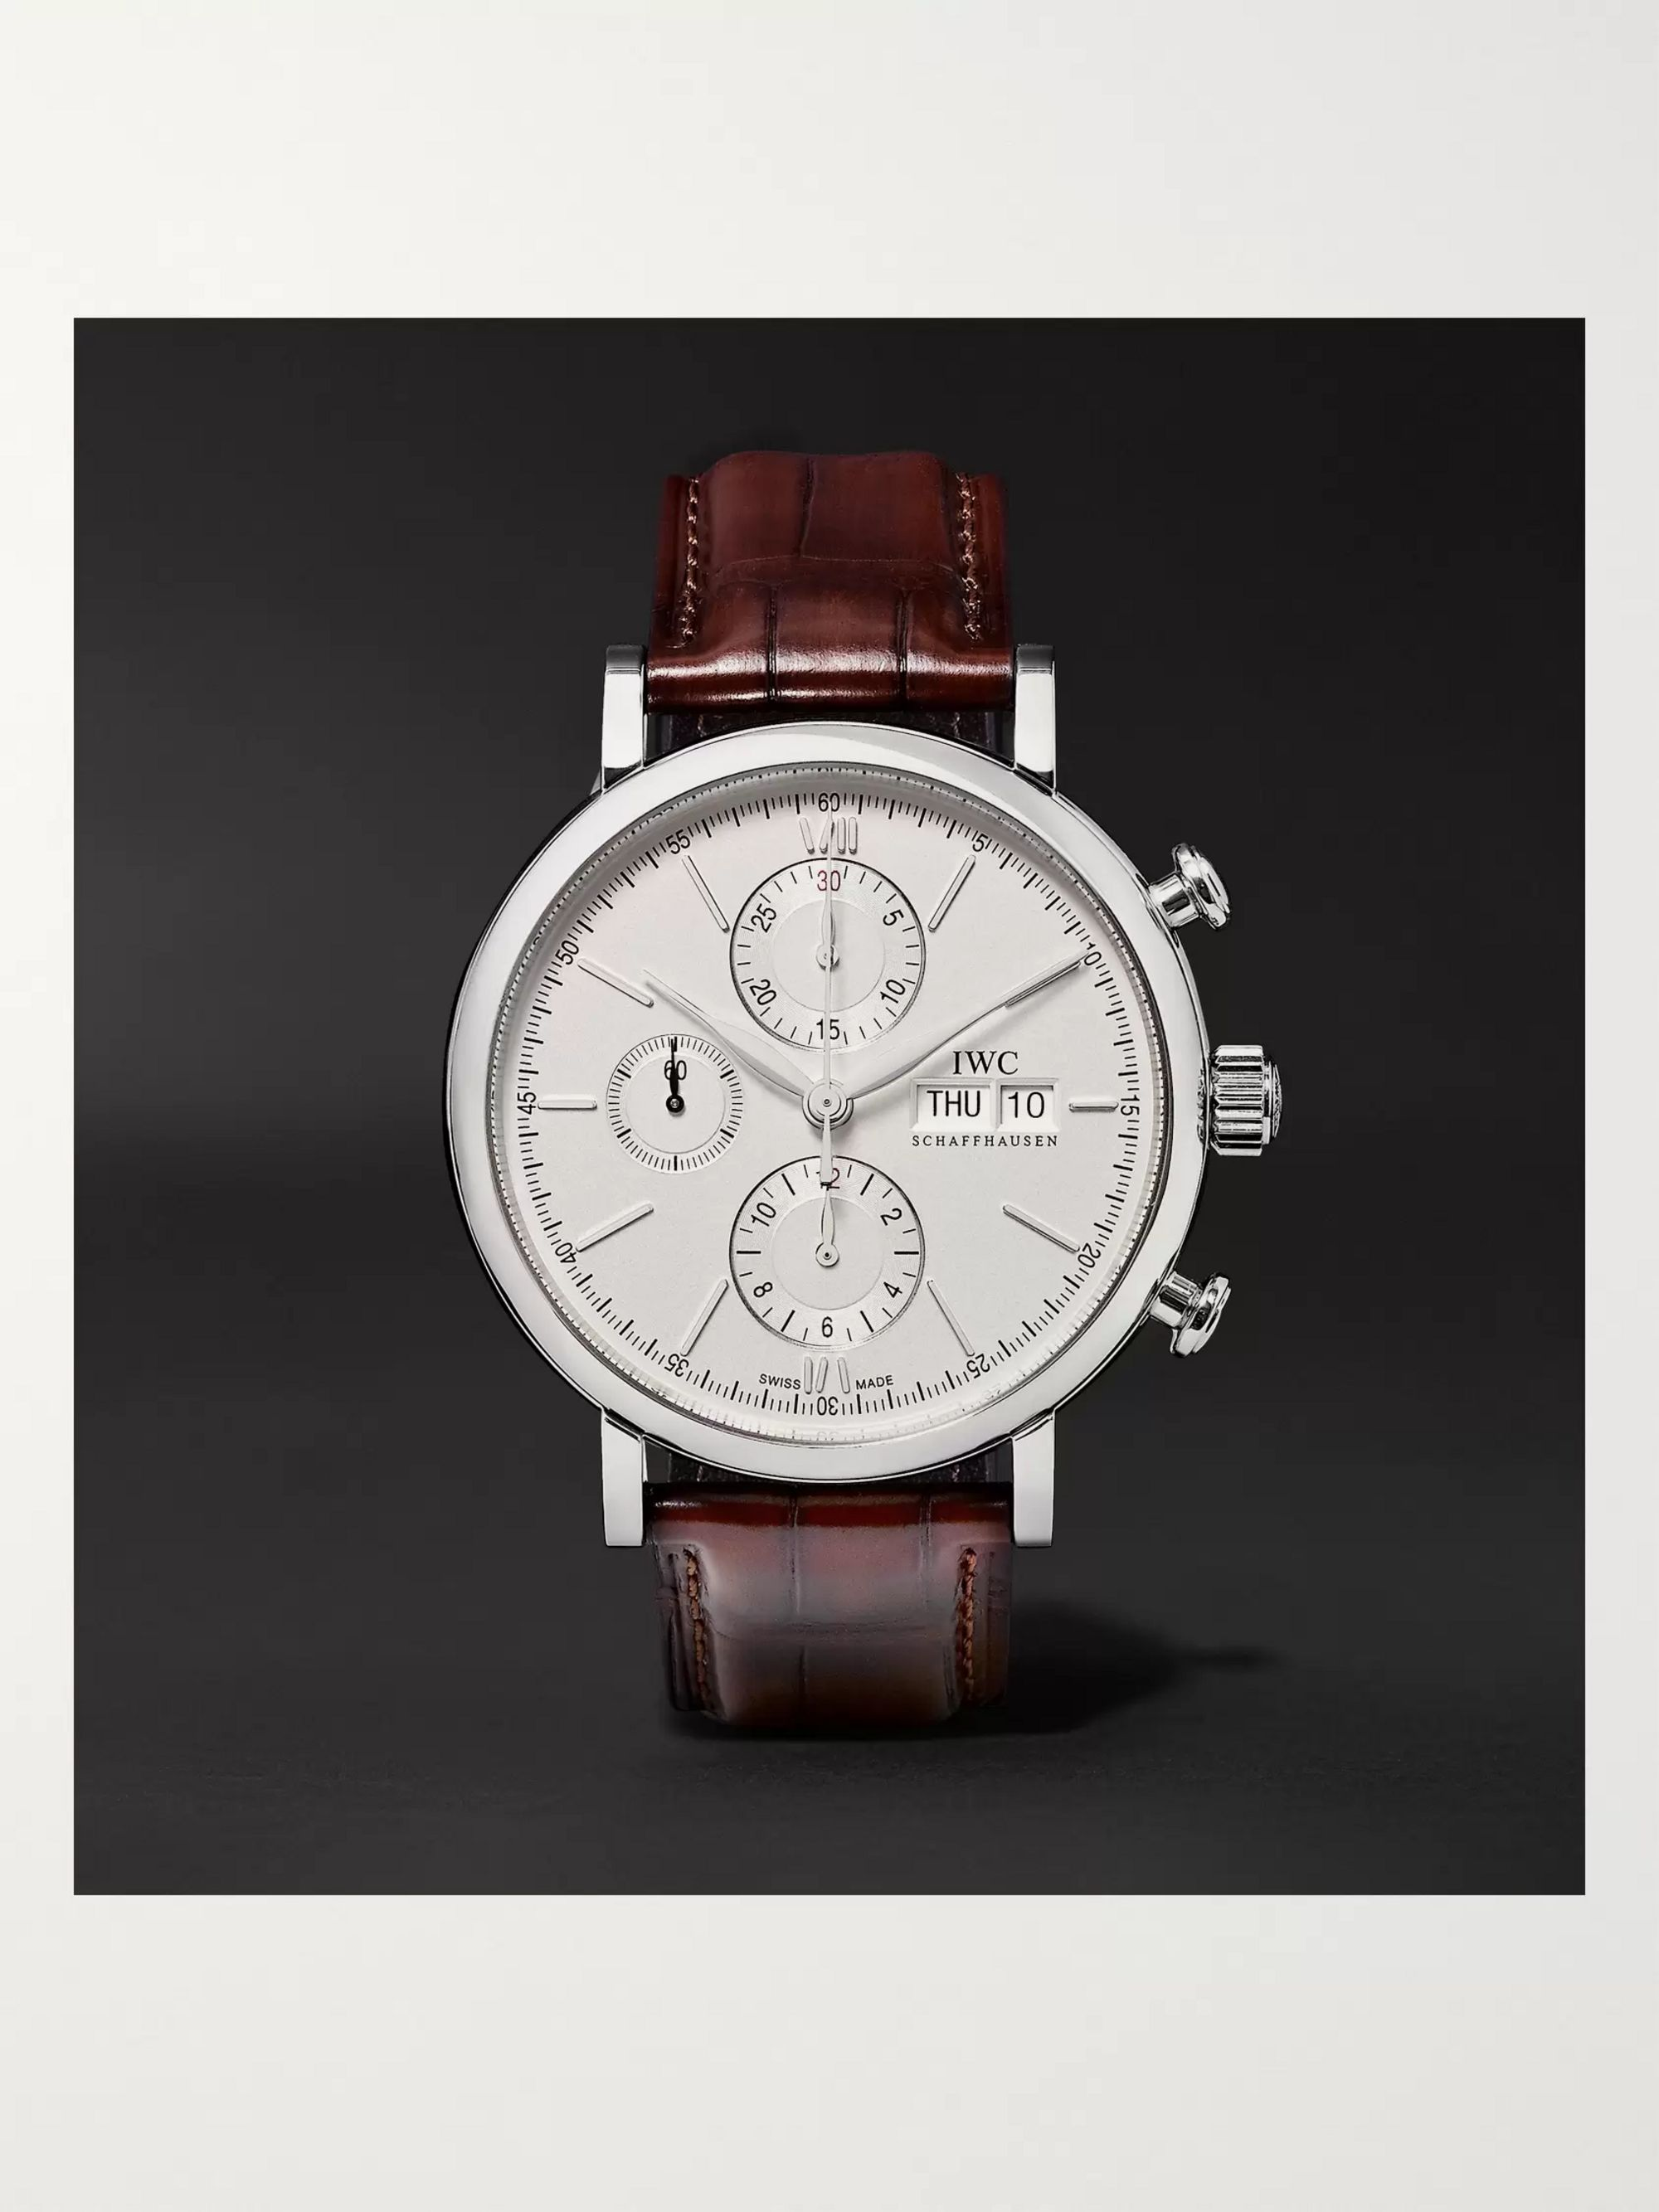 info for 424e3 ca3c0 Portofino Chronograph 42mm Stainless Steel and Alligator Watch, Ref. No.  IW391007